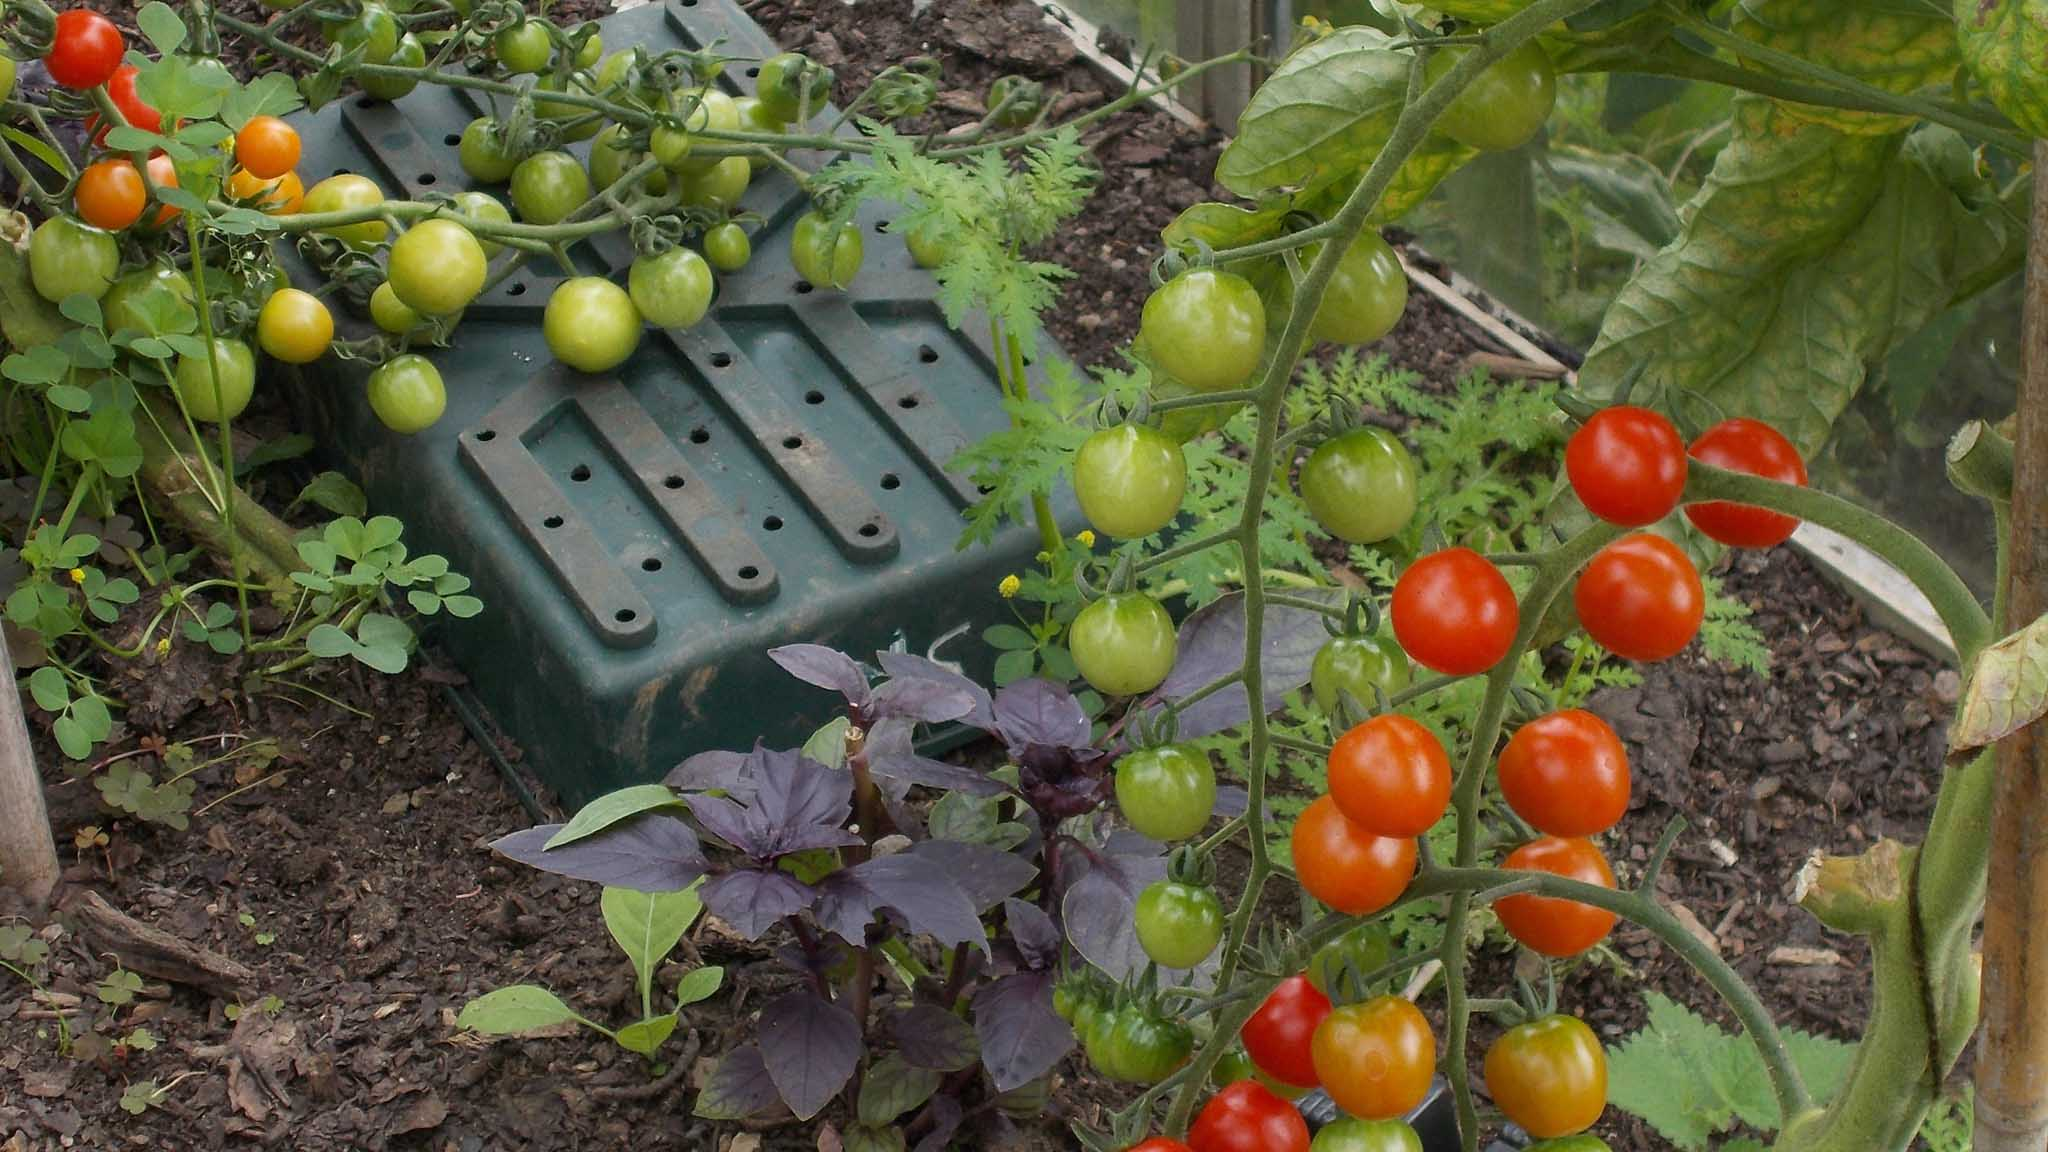 Tomatoes in the Walled Garden greenhouse